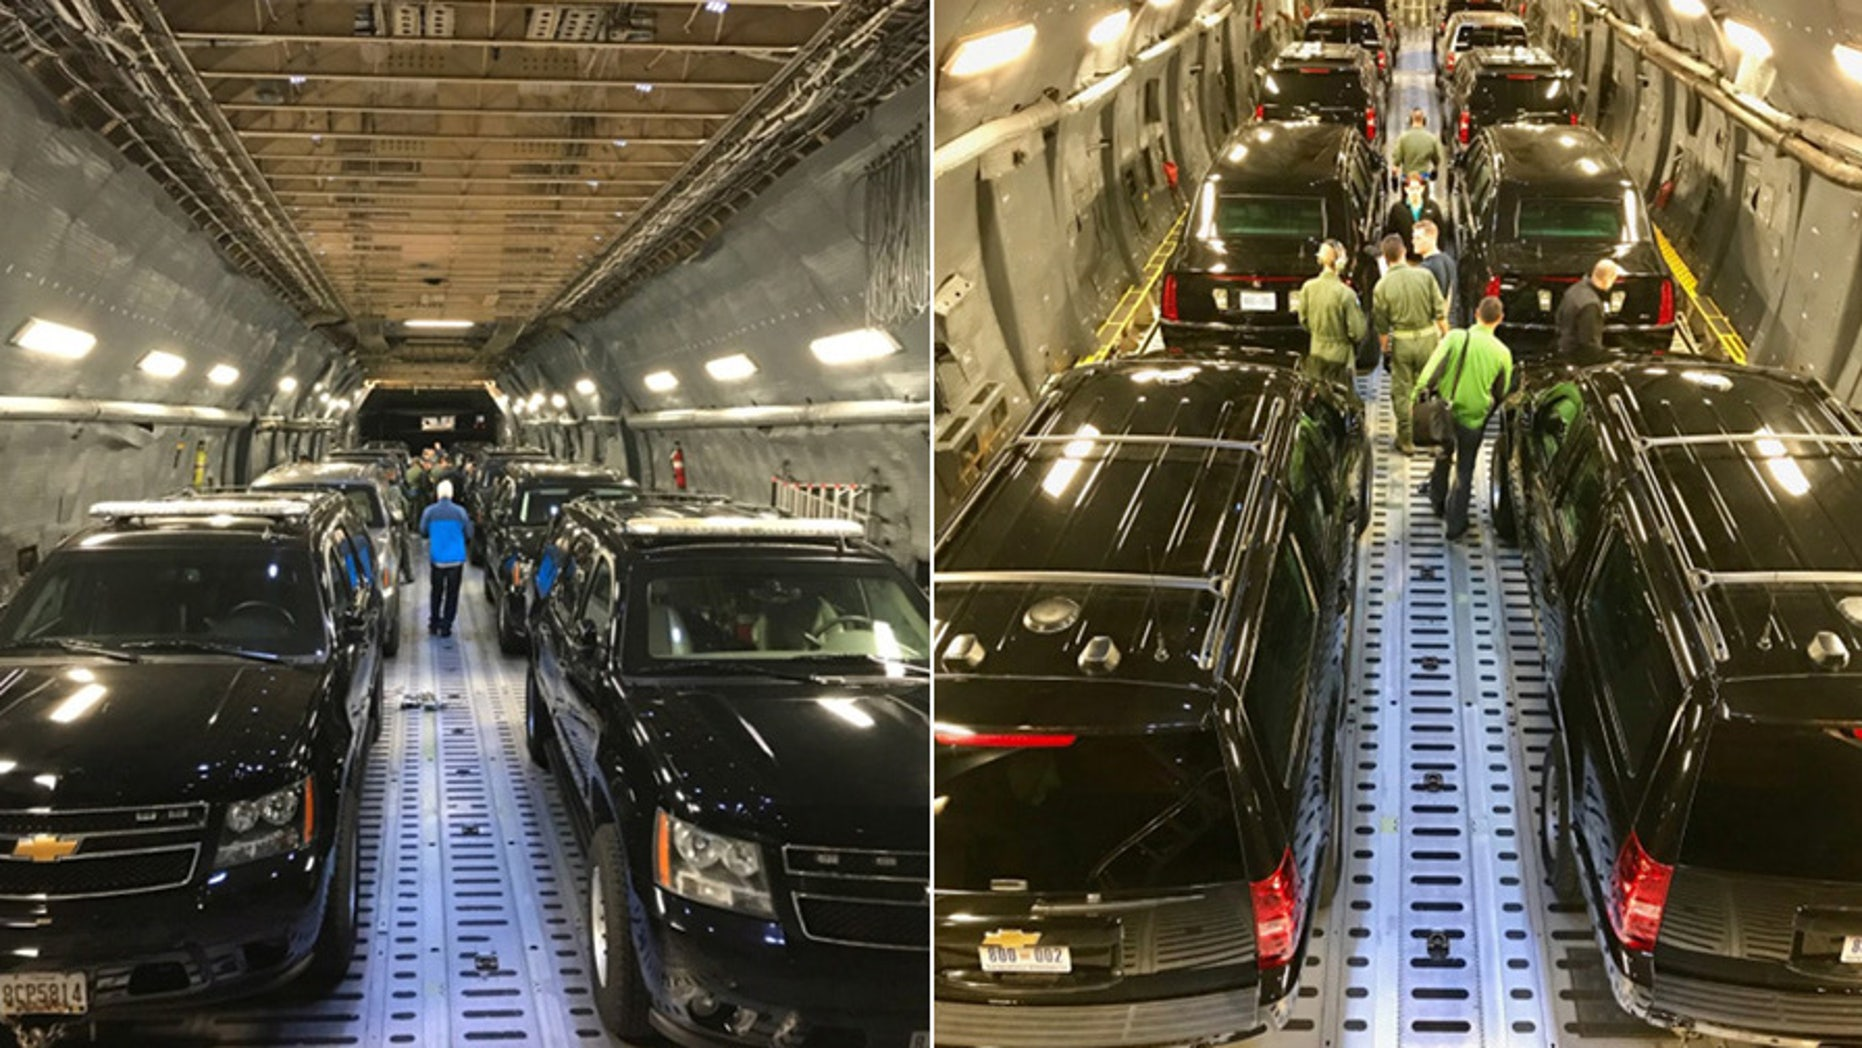 Secret Service shared these two photos of Trump's motorcade on its way to Asia.